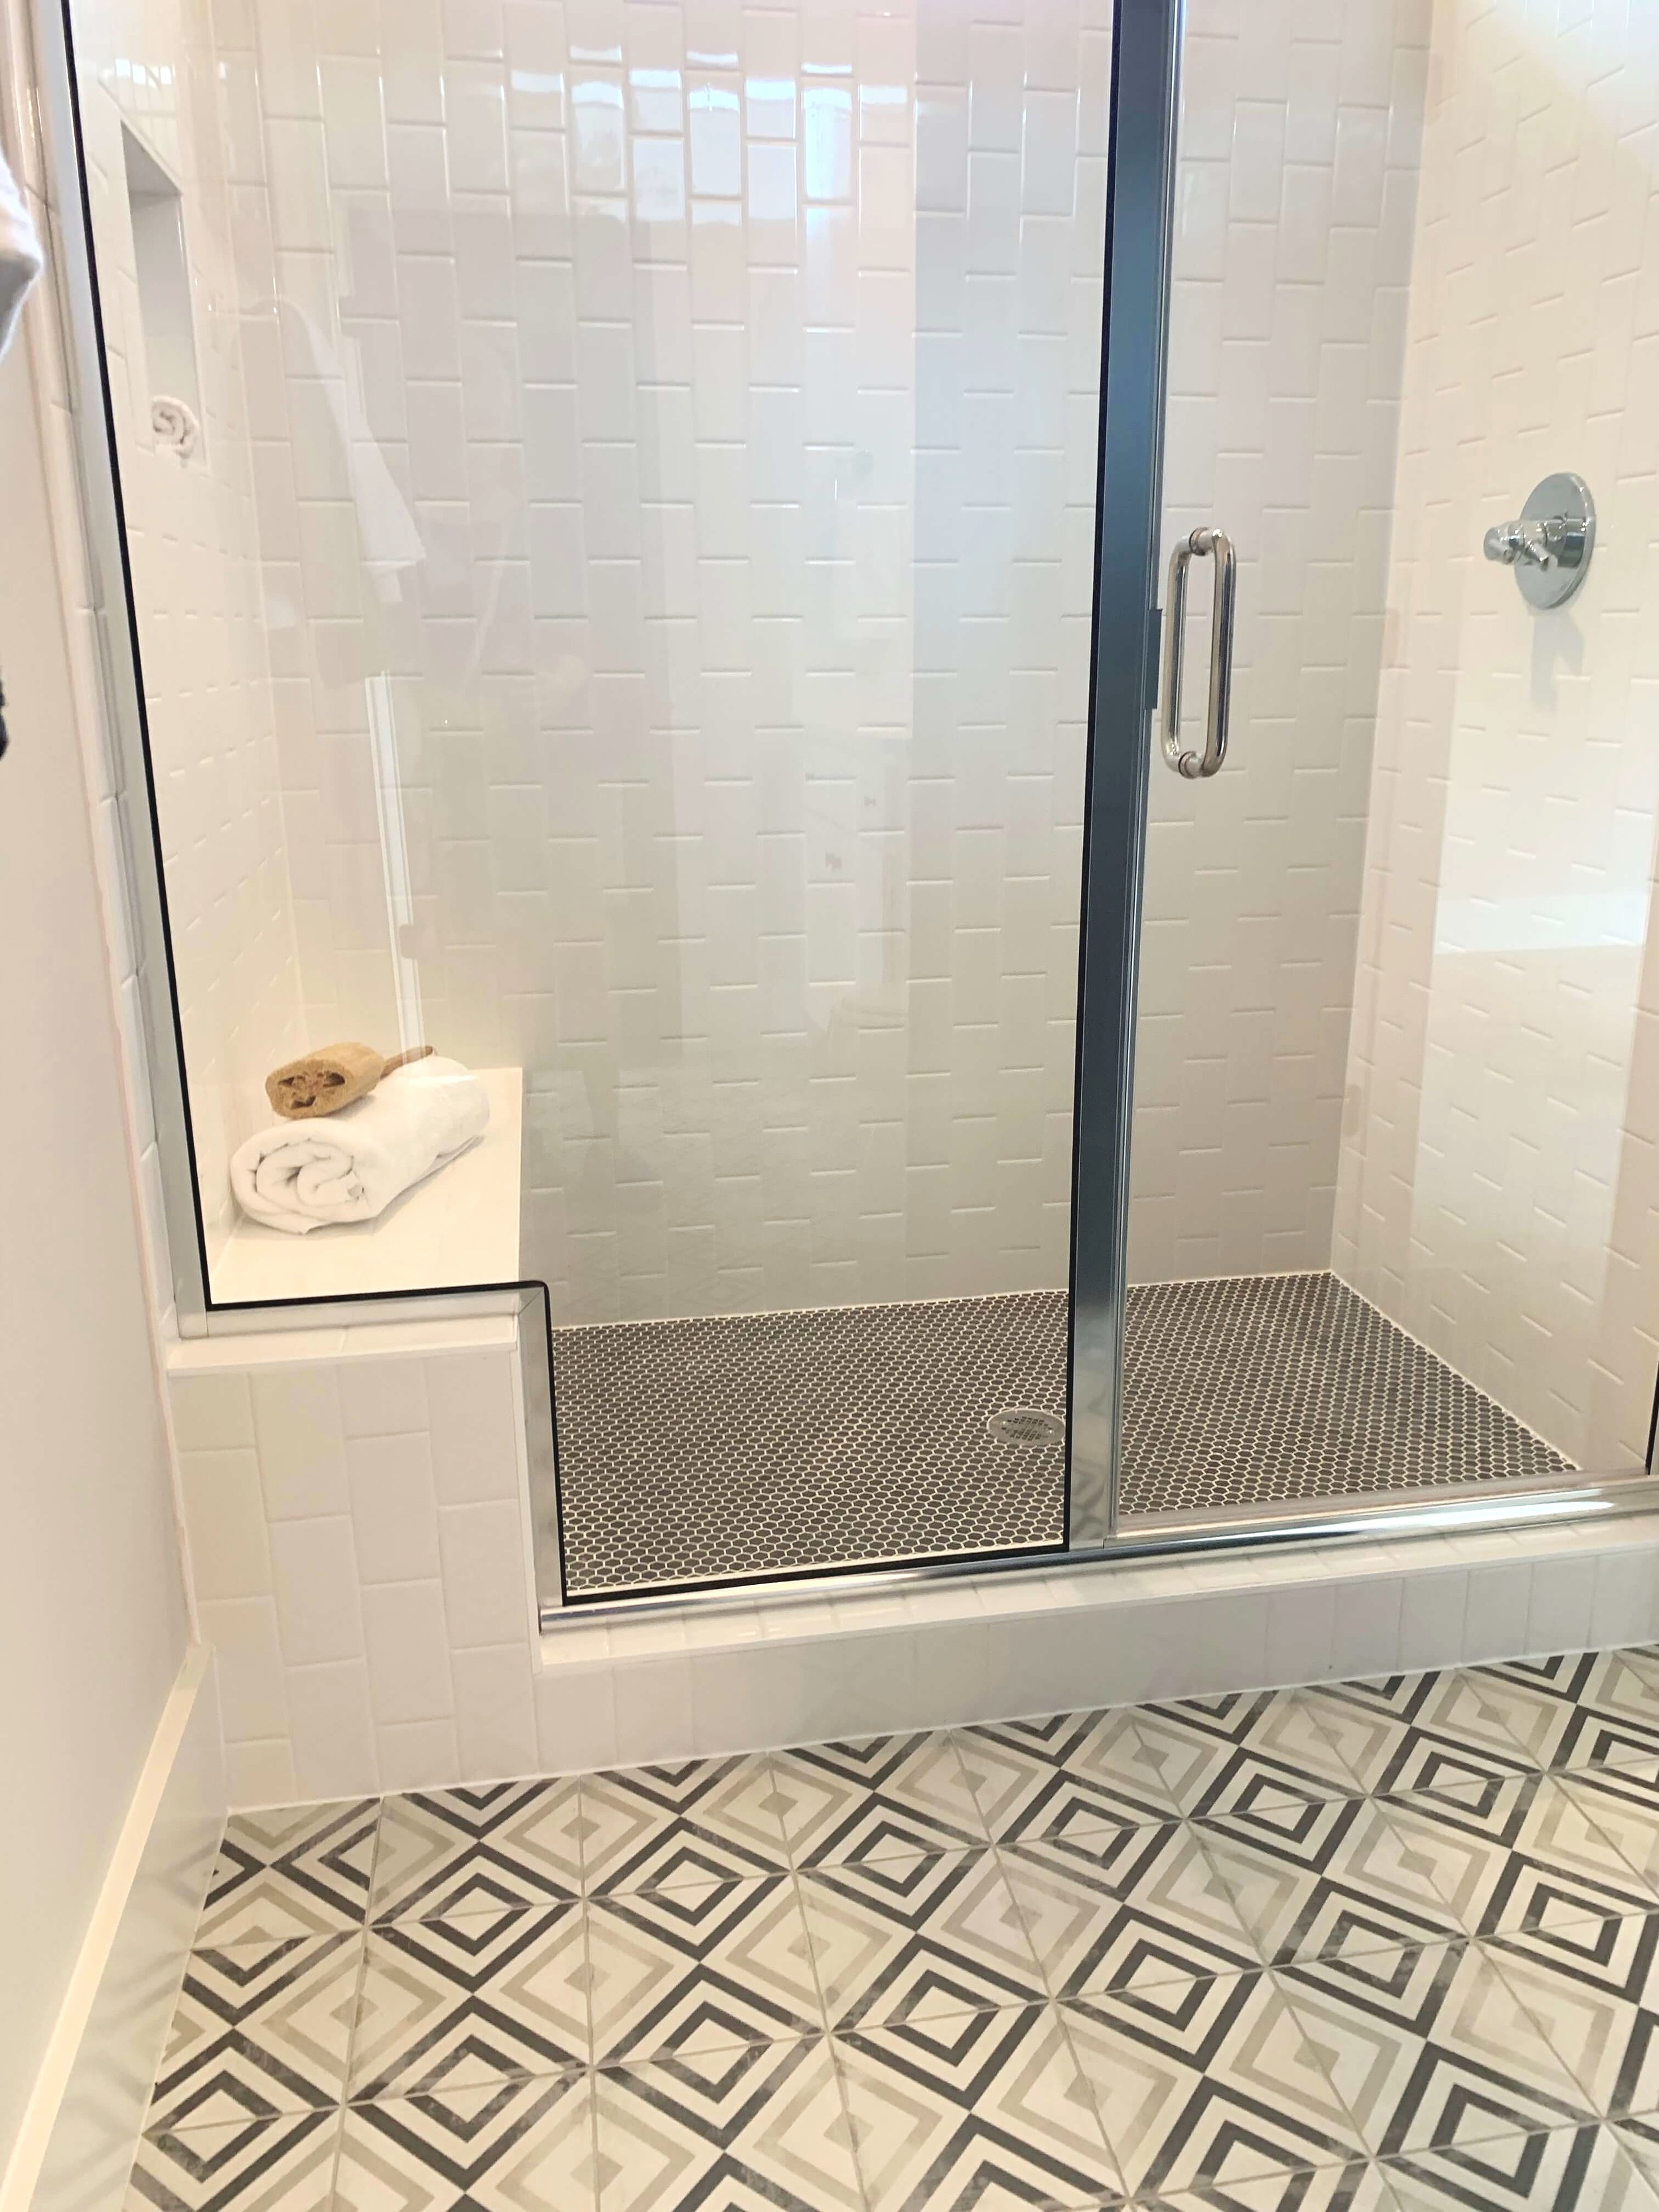 A variety of coordinating tile in a small bathroom is a great use of design time. Big impact!